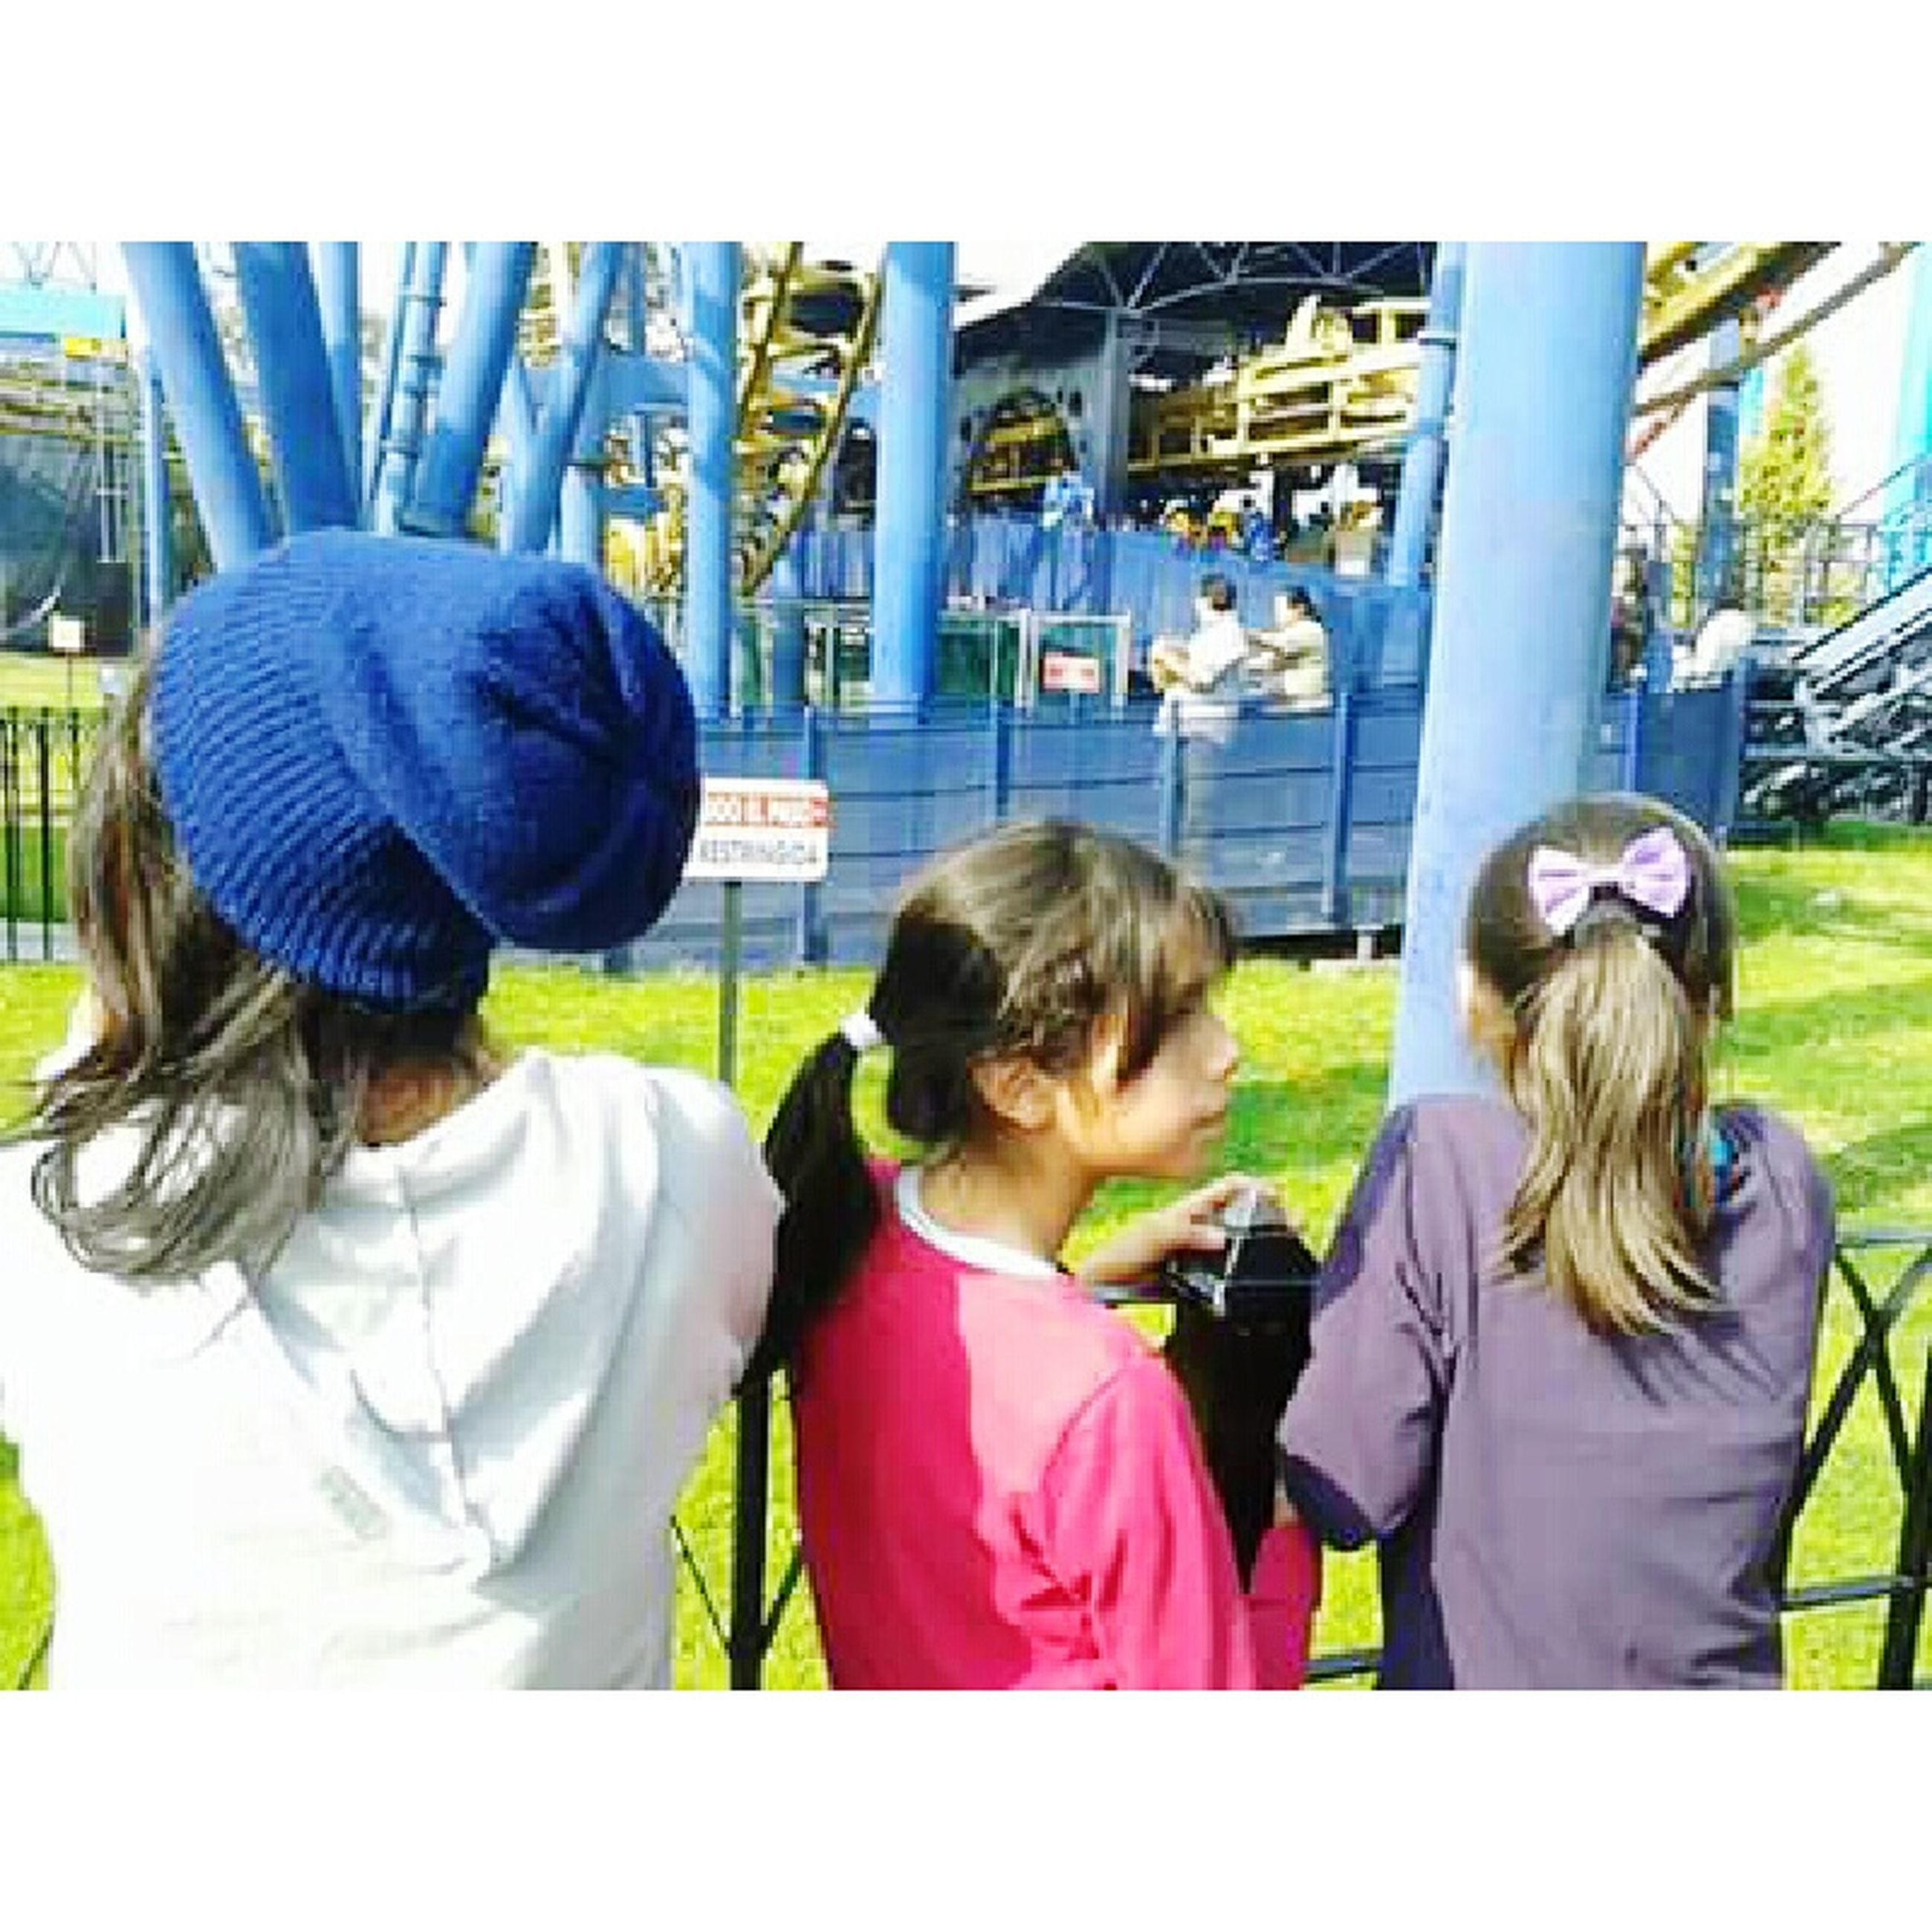 leisure activity, lifestyles, childhood, togetherness, casual clothing, boys, elementary age, bonding, person, girls, men, love, fun, sitting, waist up, enjoyment, park - man made space, playground